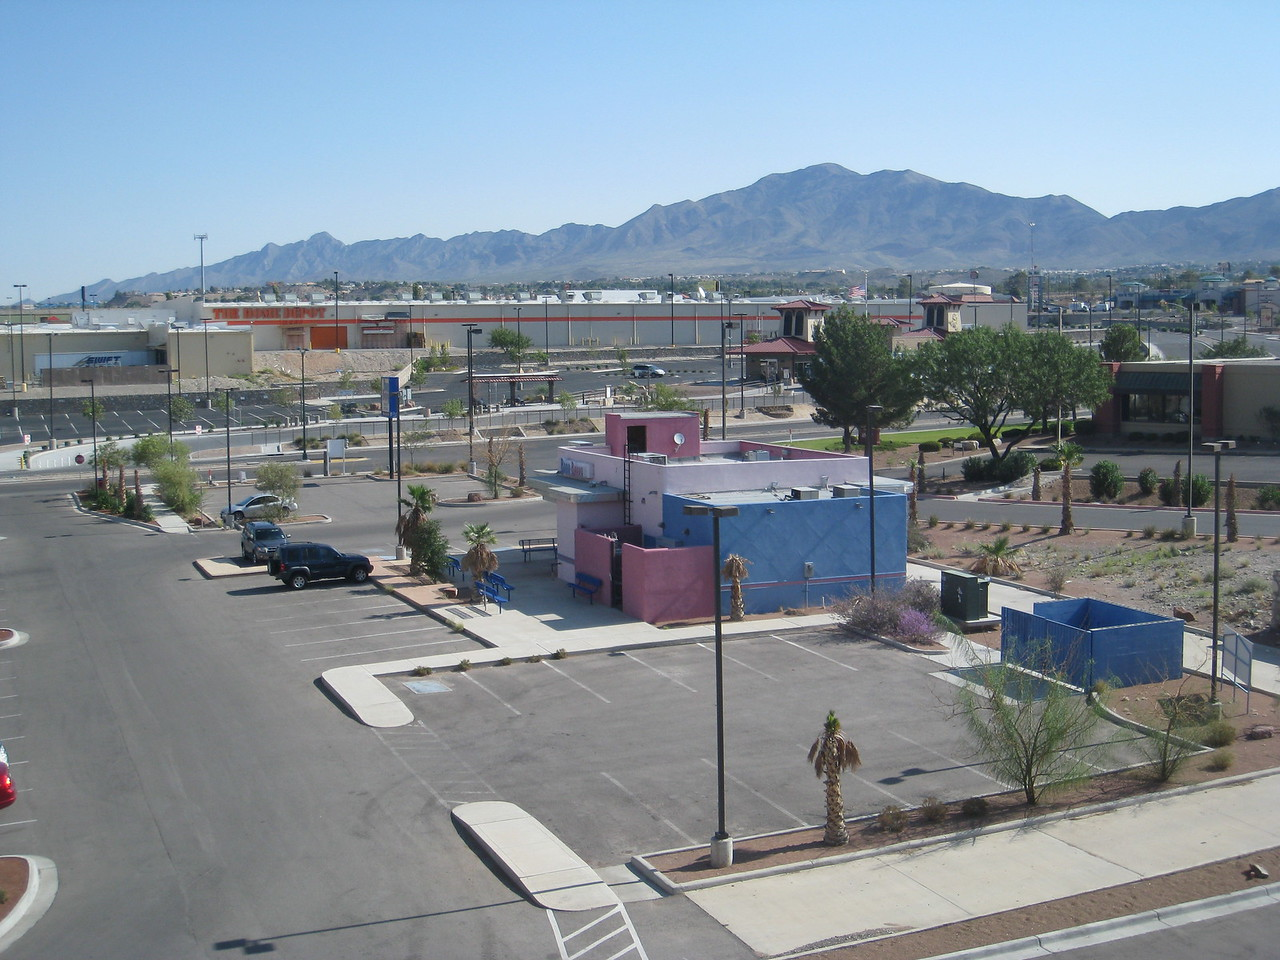 View from our hotel near Mesa St. and I-10.